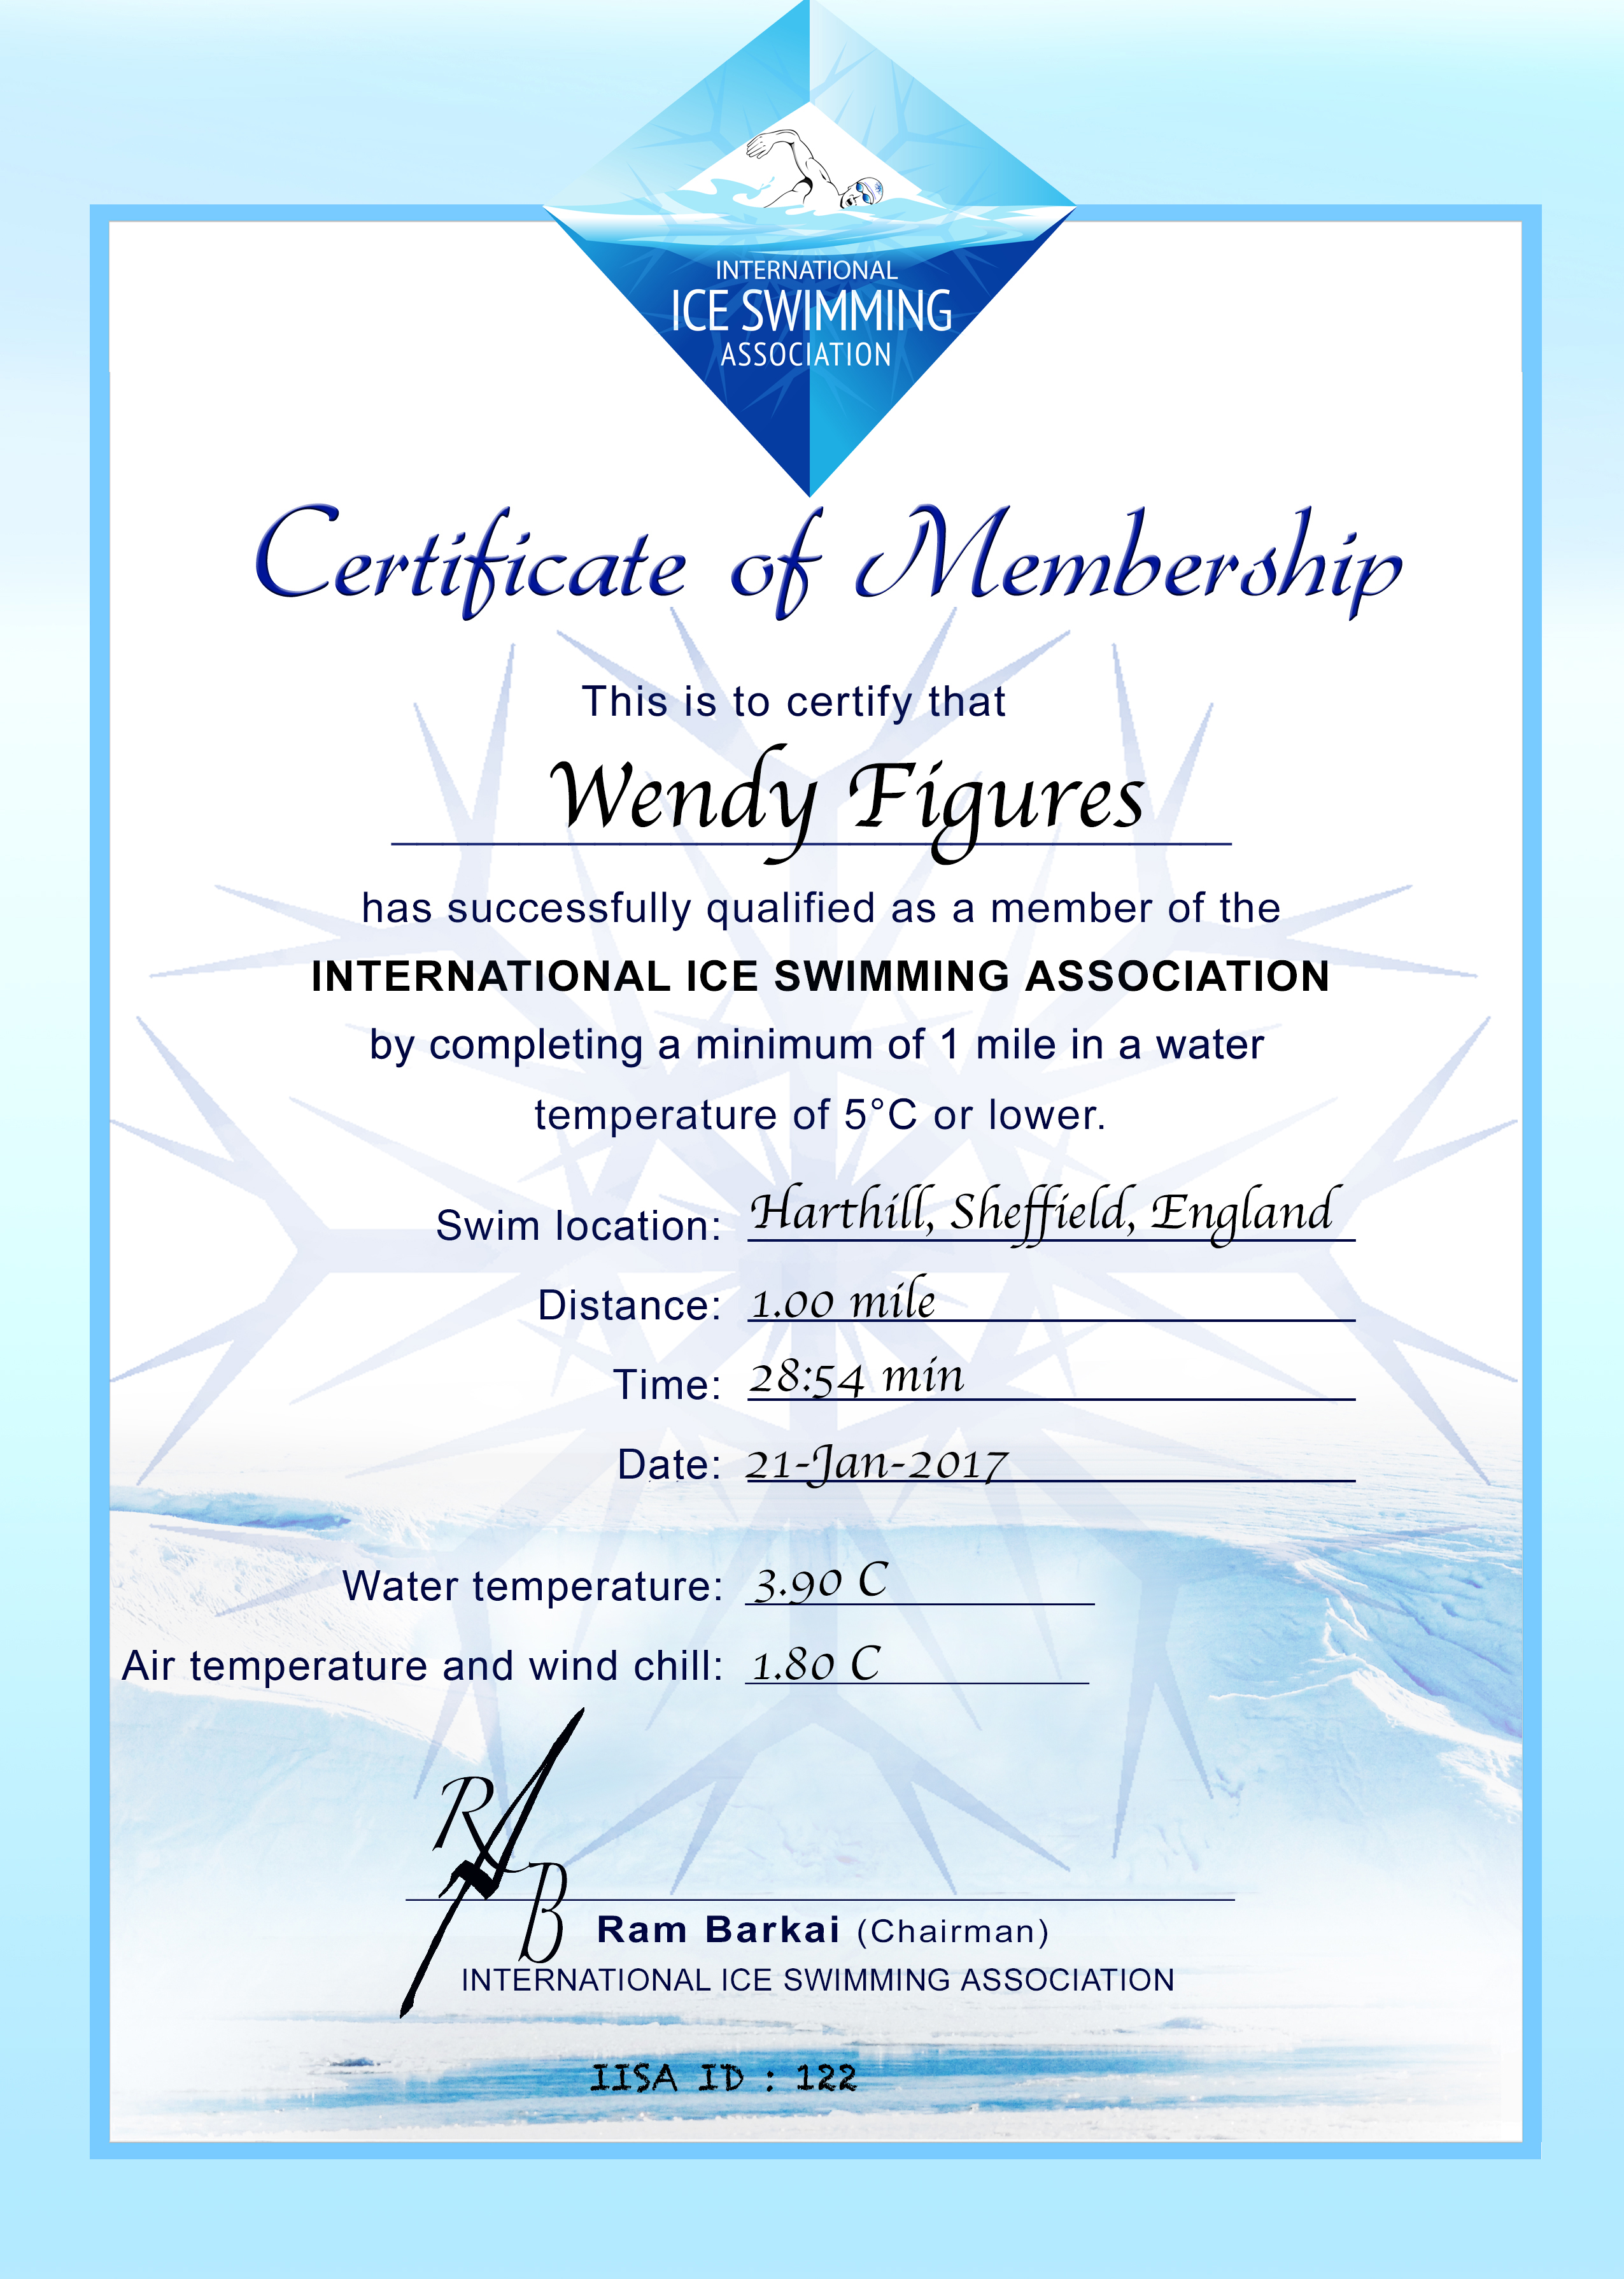 Ice Mile Certificate - Wendy Figures